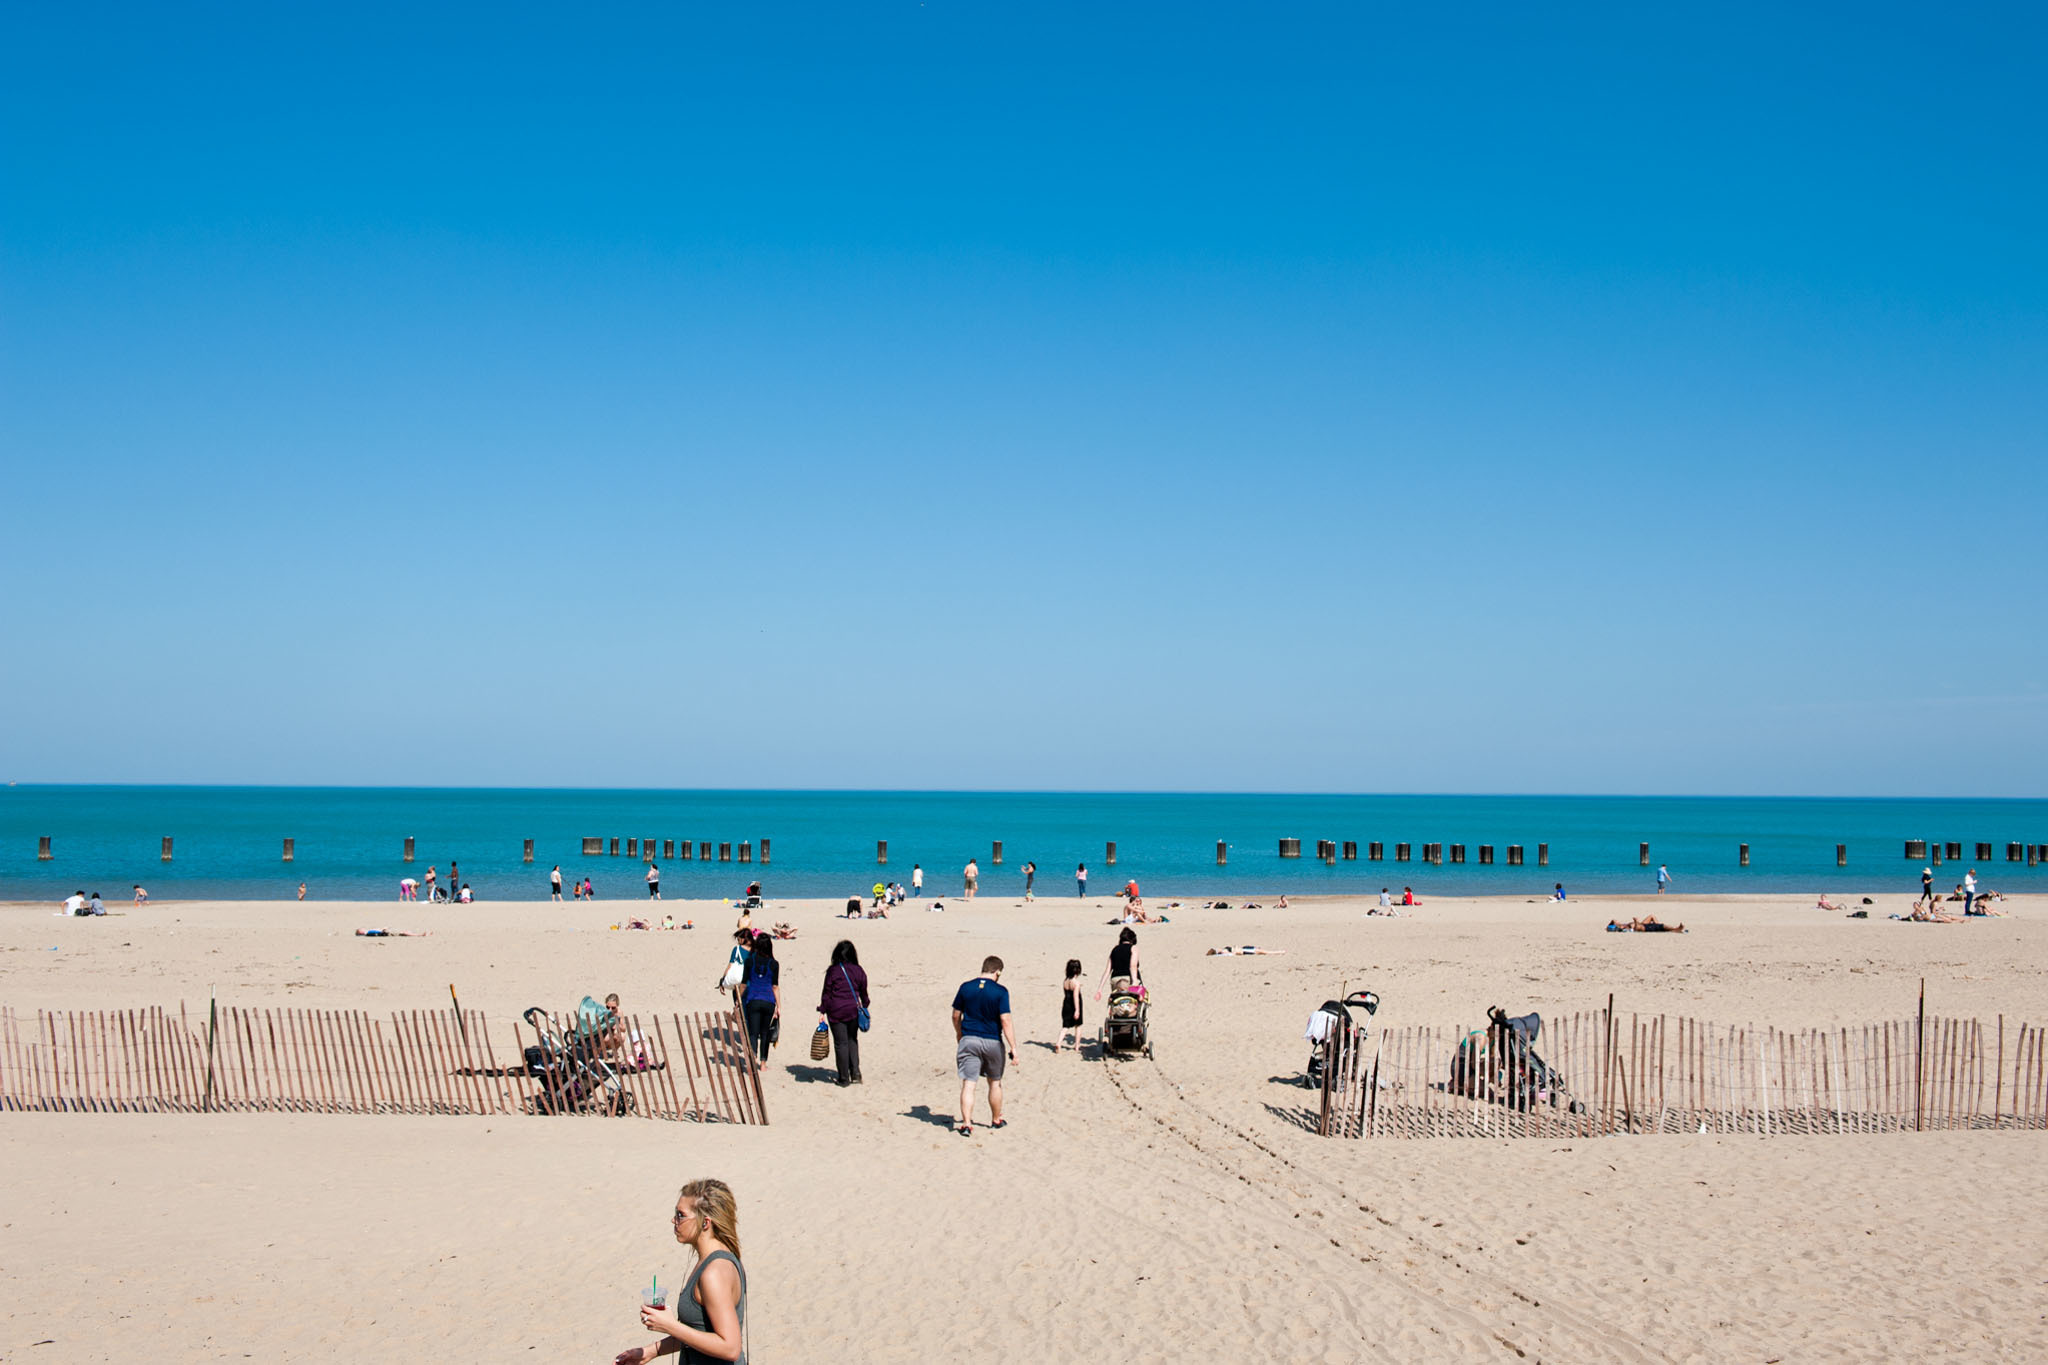 The 25 best sights and attractions in Chicago